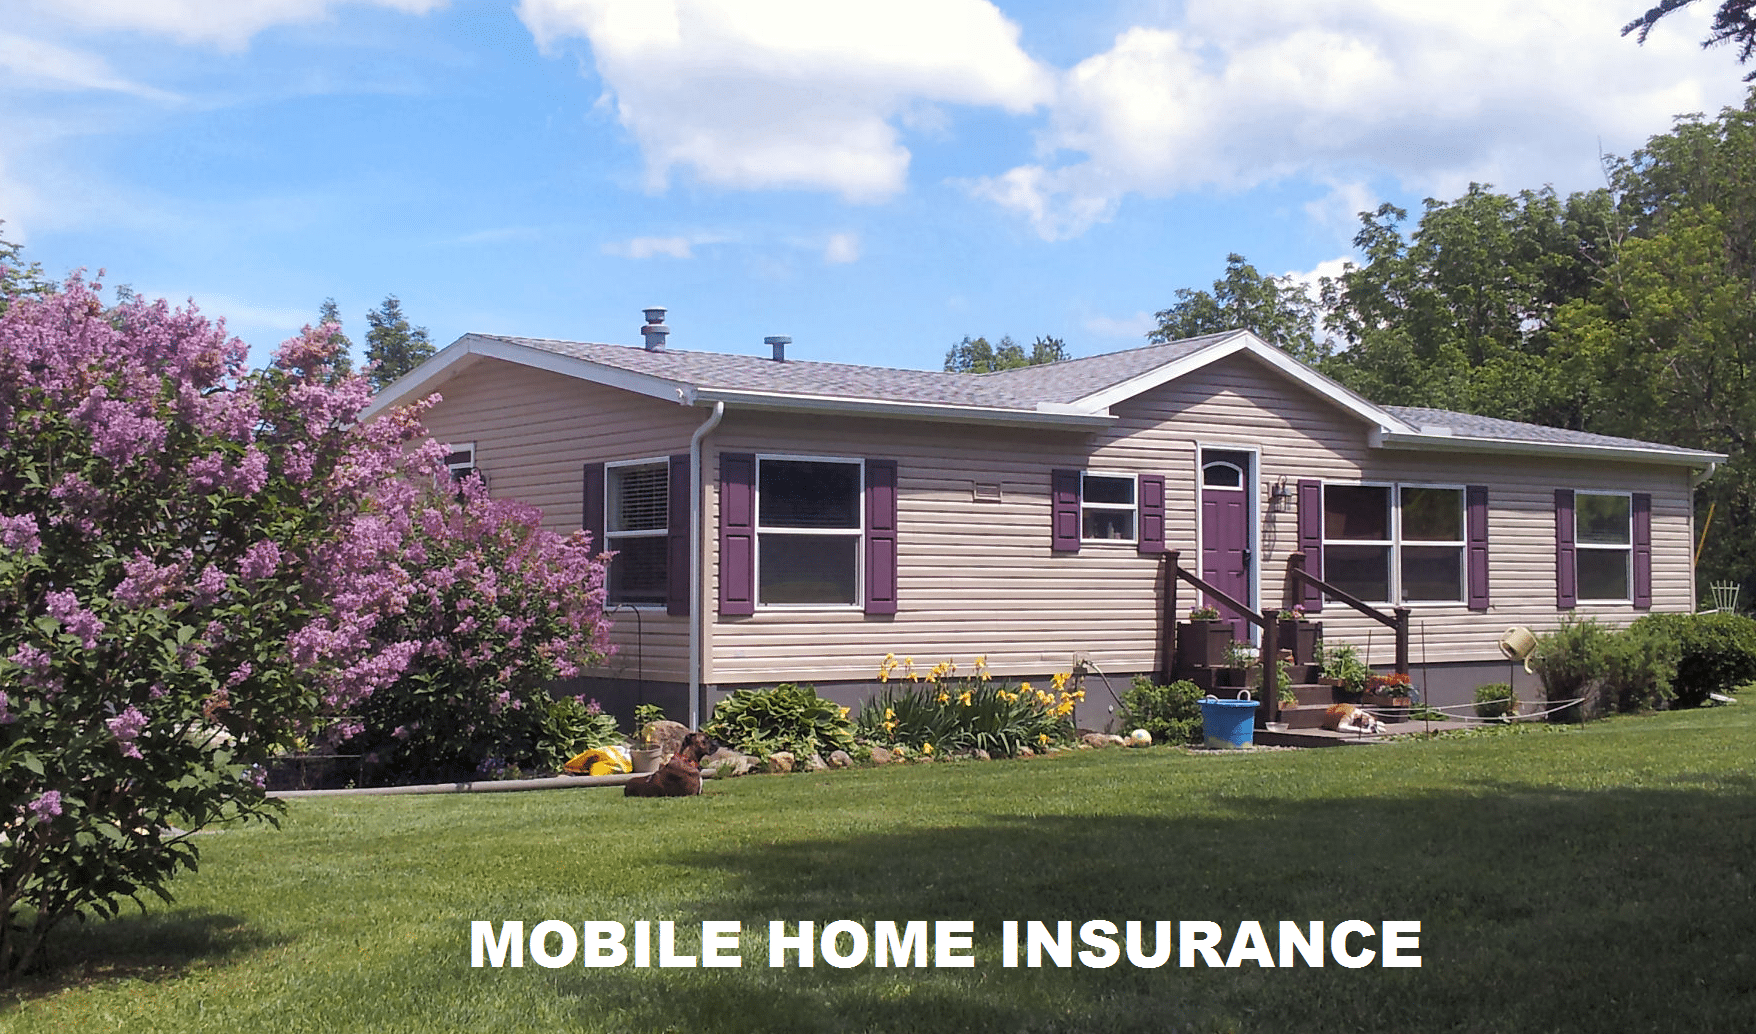 Mobile Home Insurance California Mobile Home Landscaping Mobile